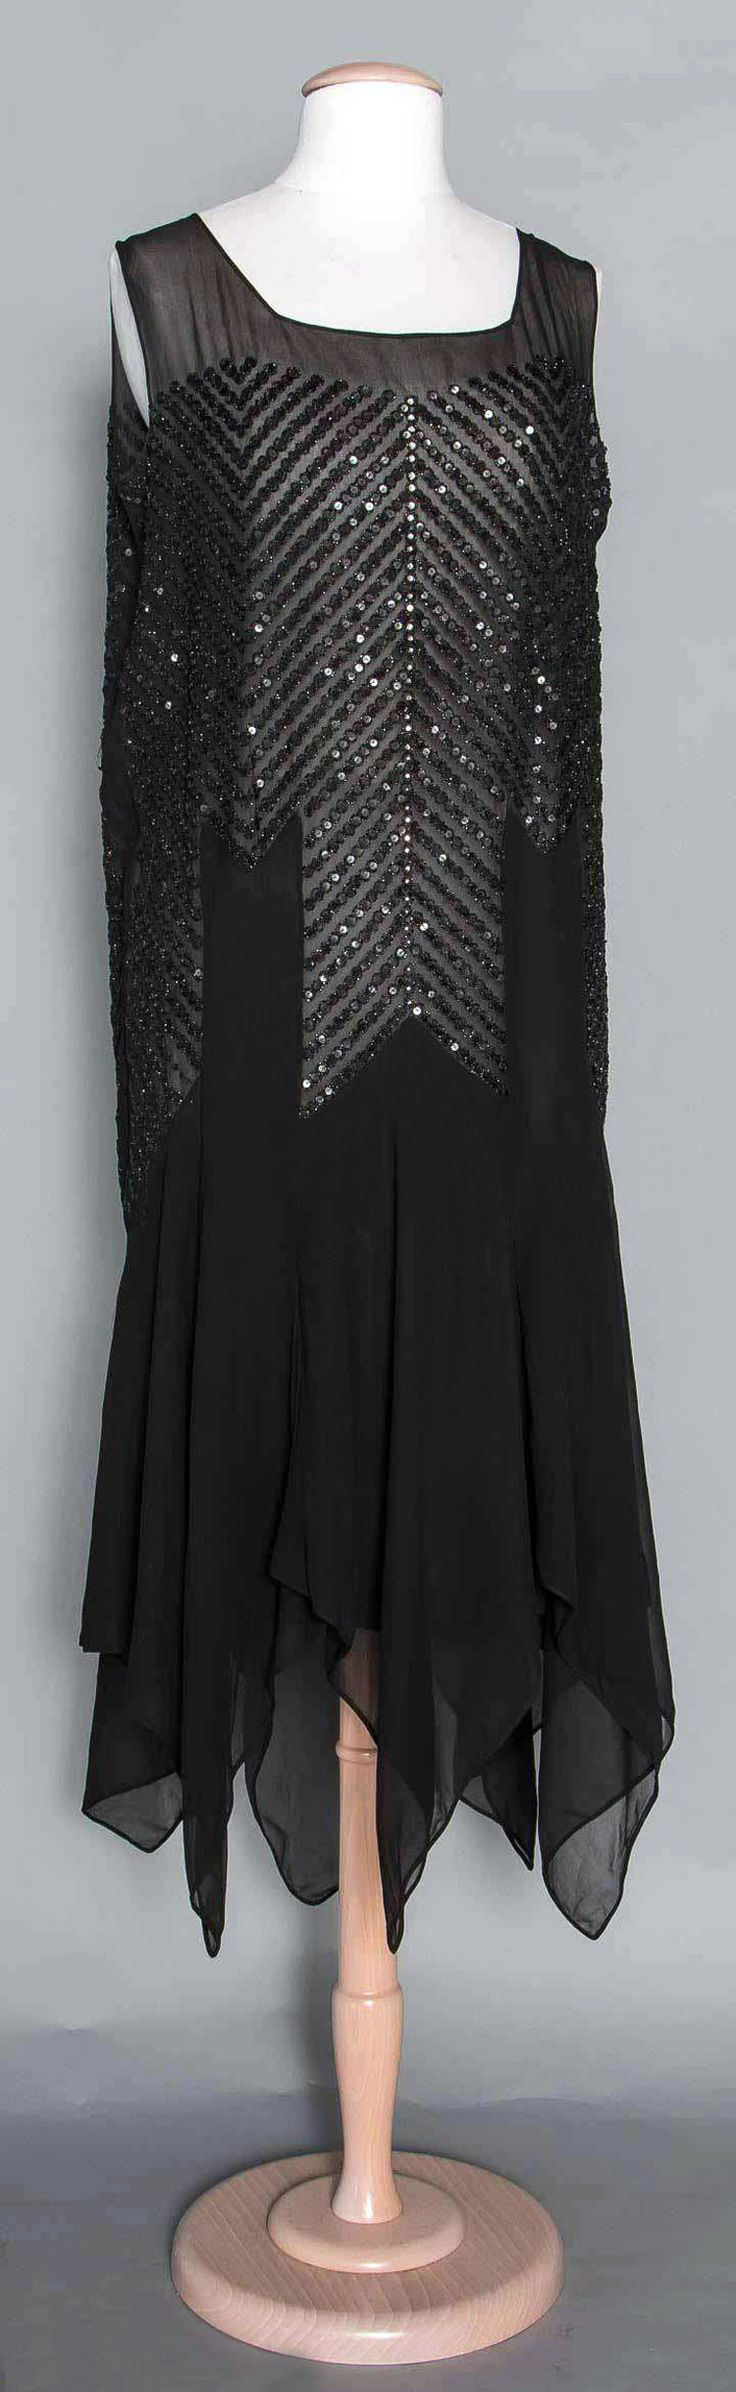 Evening dress ca. late 1920s. Black silk chiffon, handkerchief hem, rows of black beads & sequins in chevron patterns, sleeveless. Suddon-Cleaver Costume Collection. Augusta Auctions